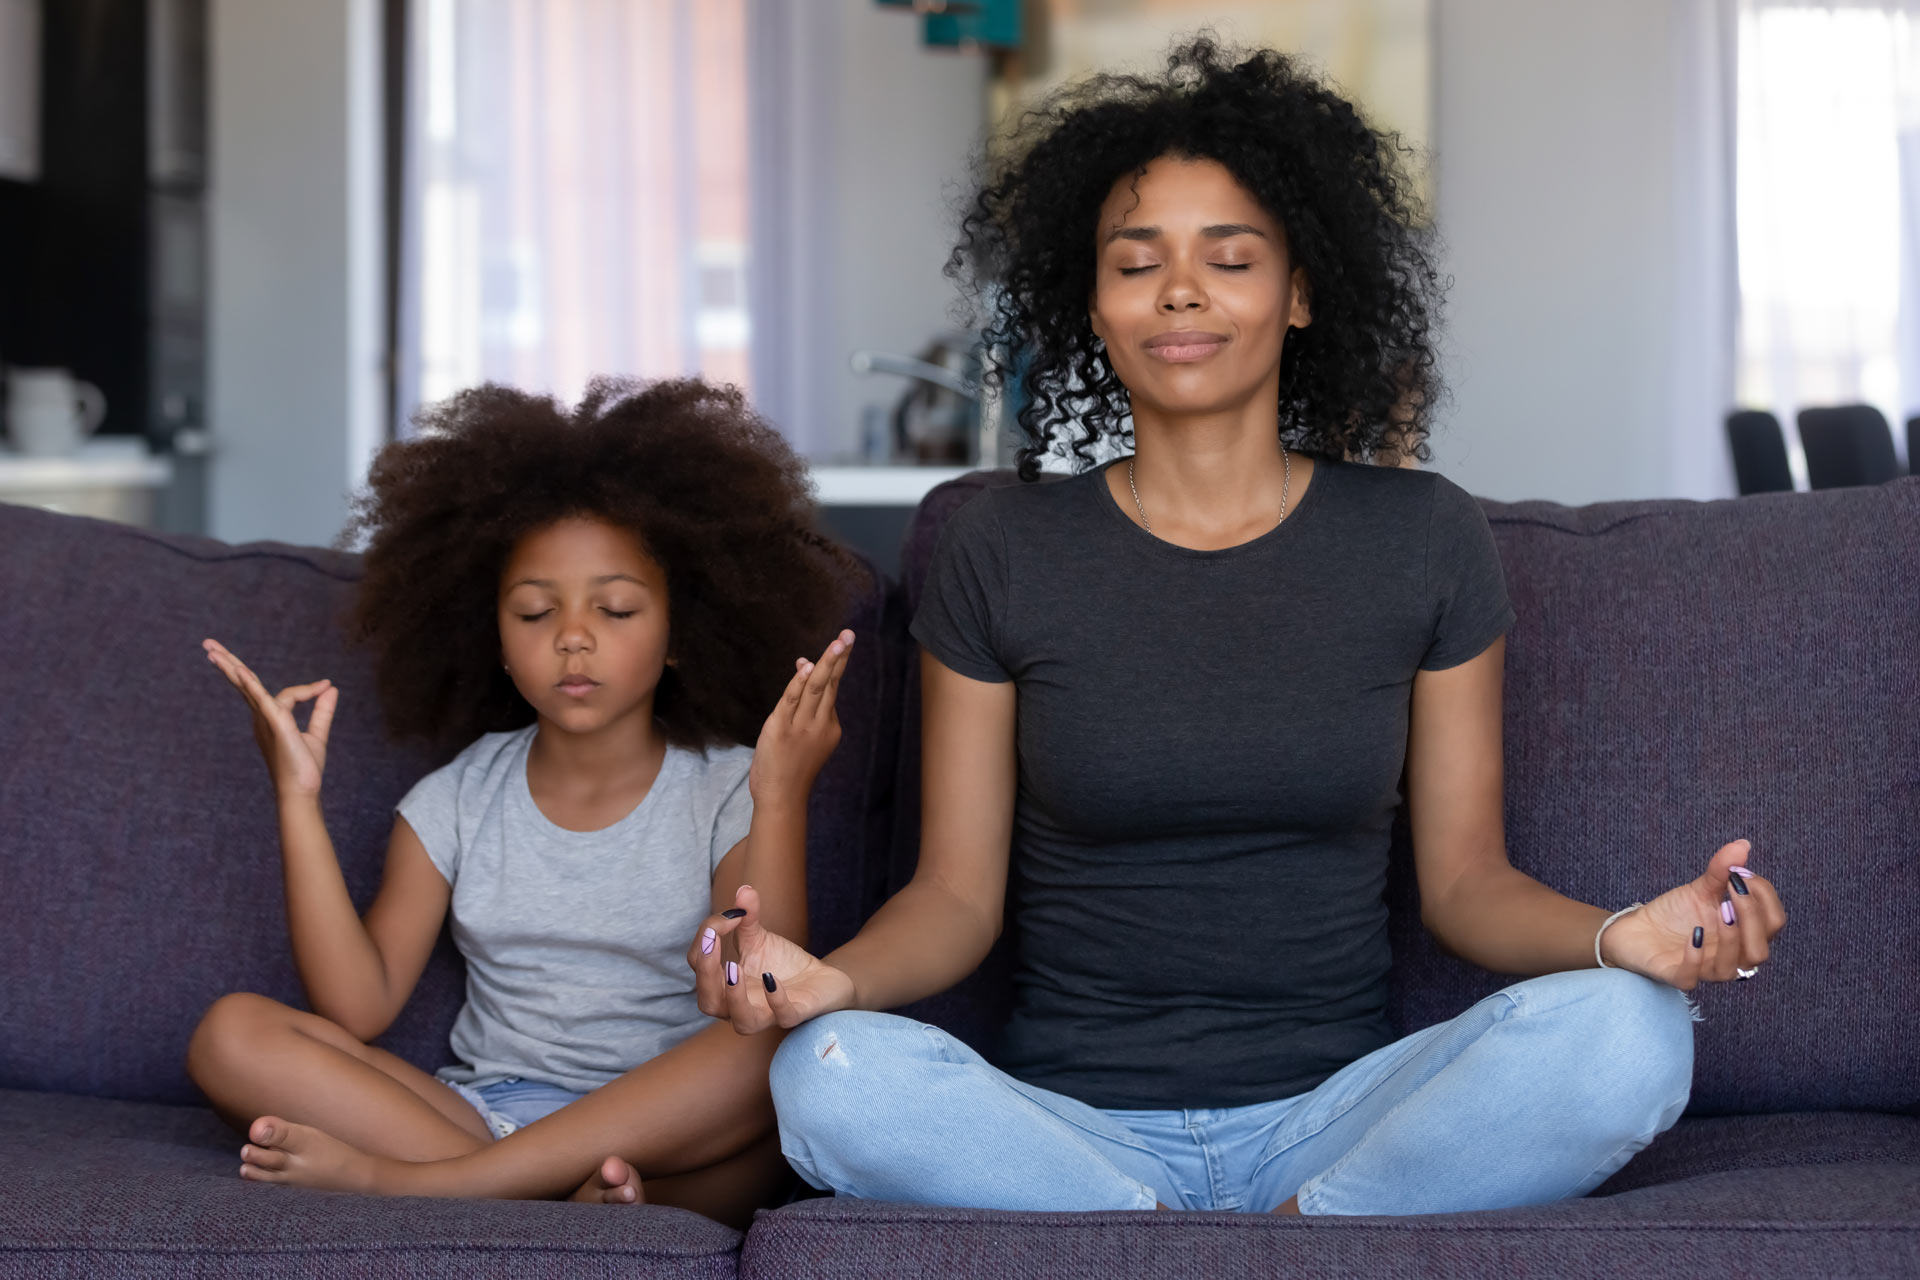 14_Woman-and-Child-in-Yoga-Pose